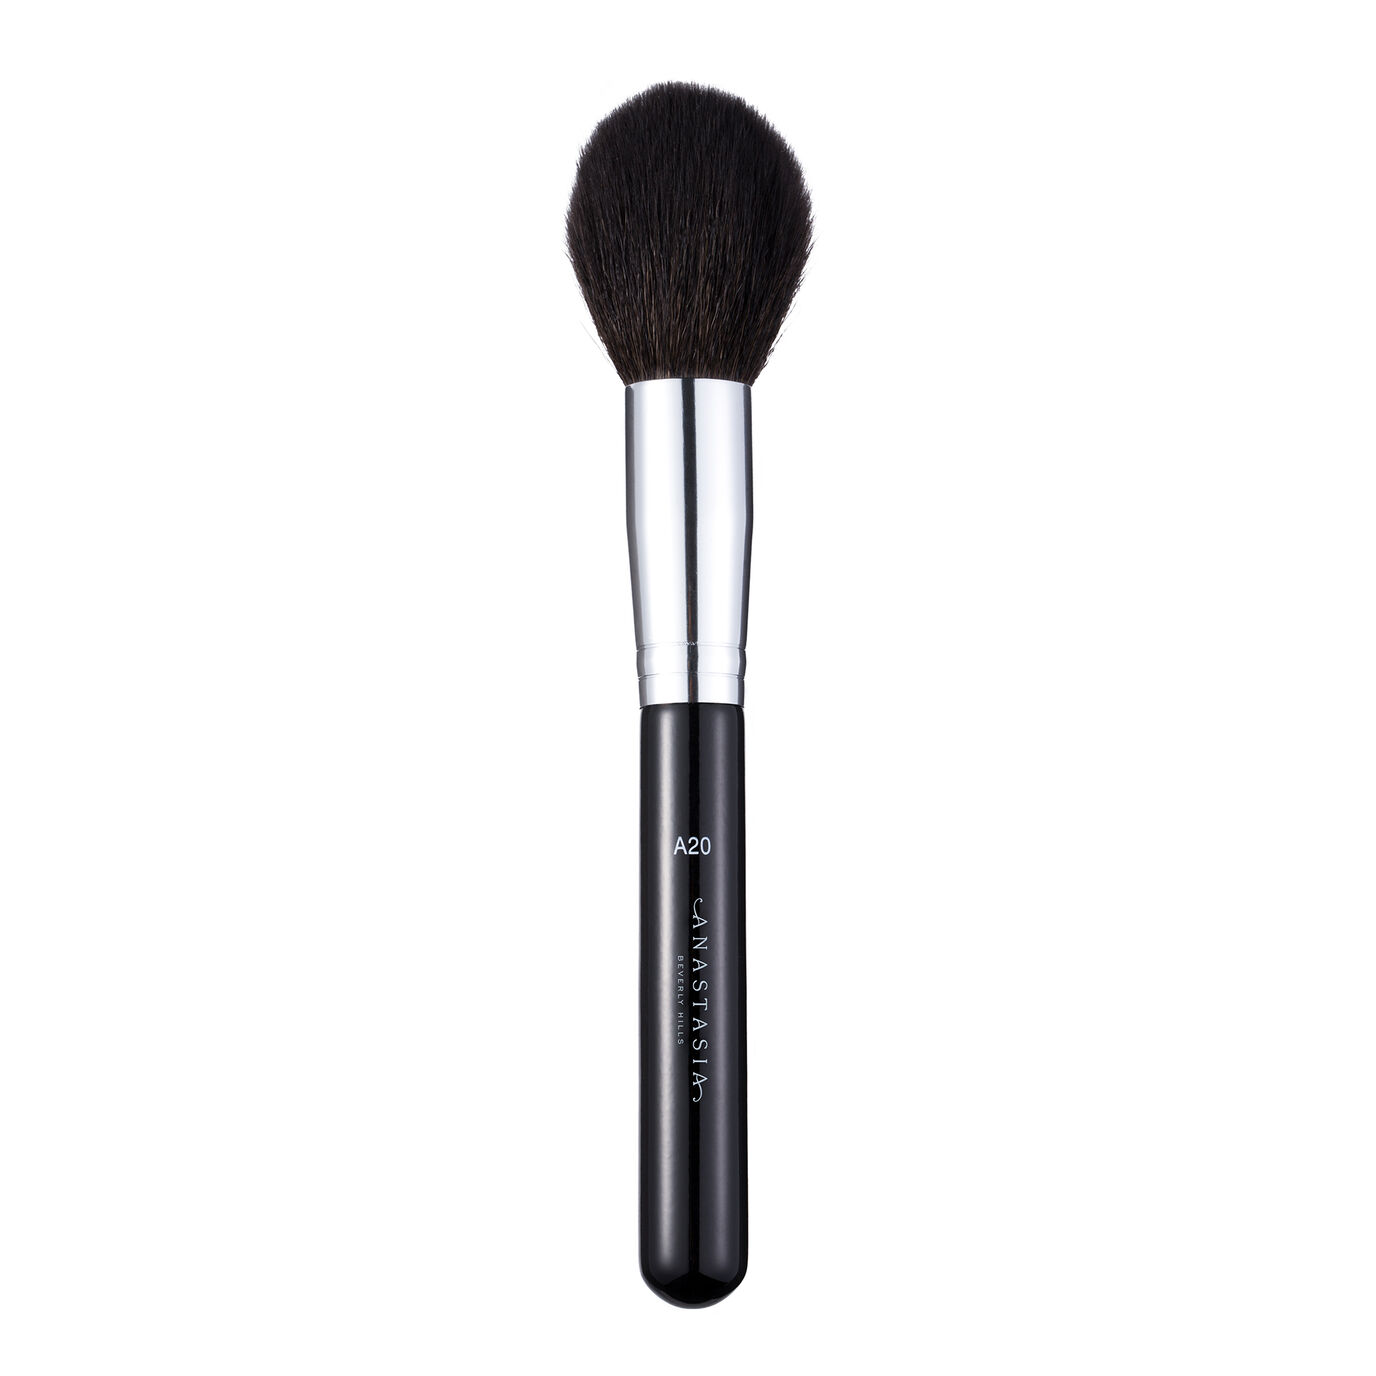 A20 Pro Brush - Large Powder Brush